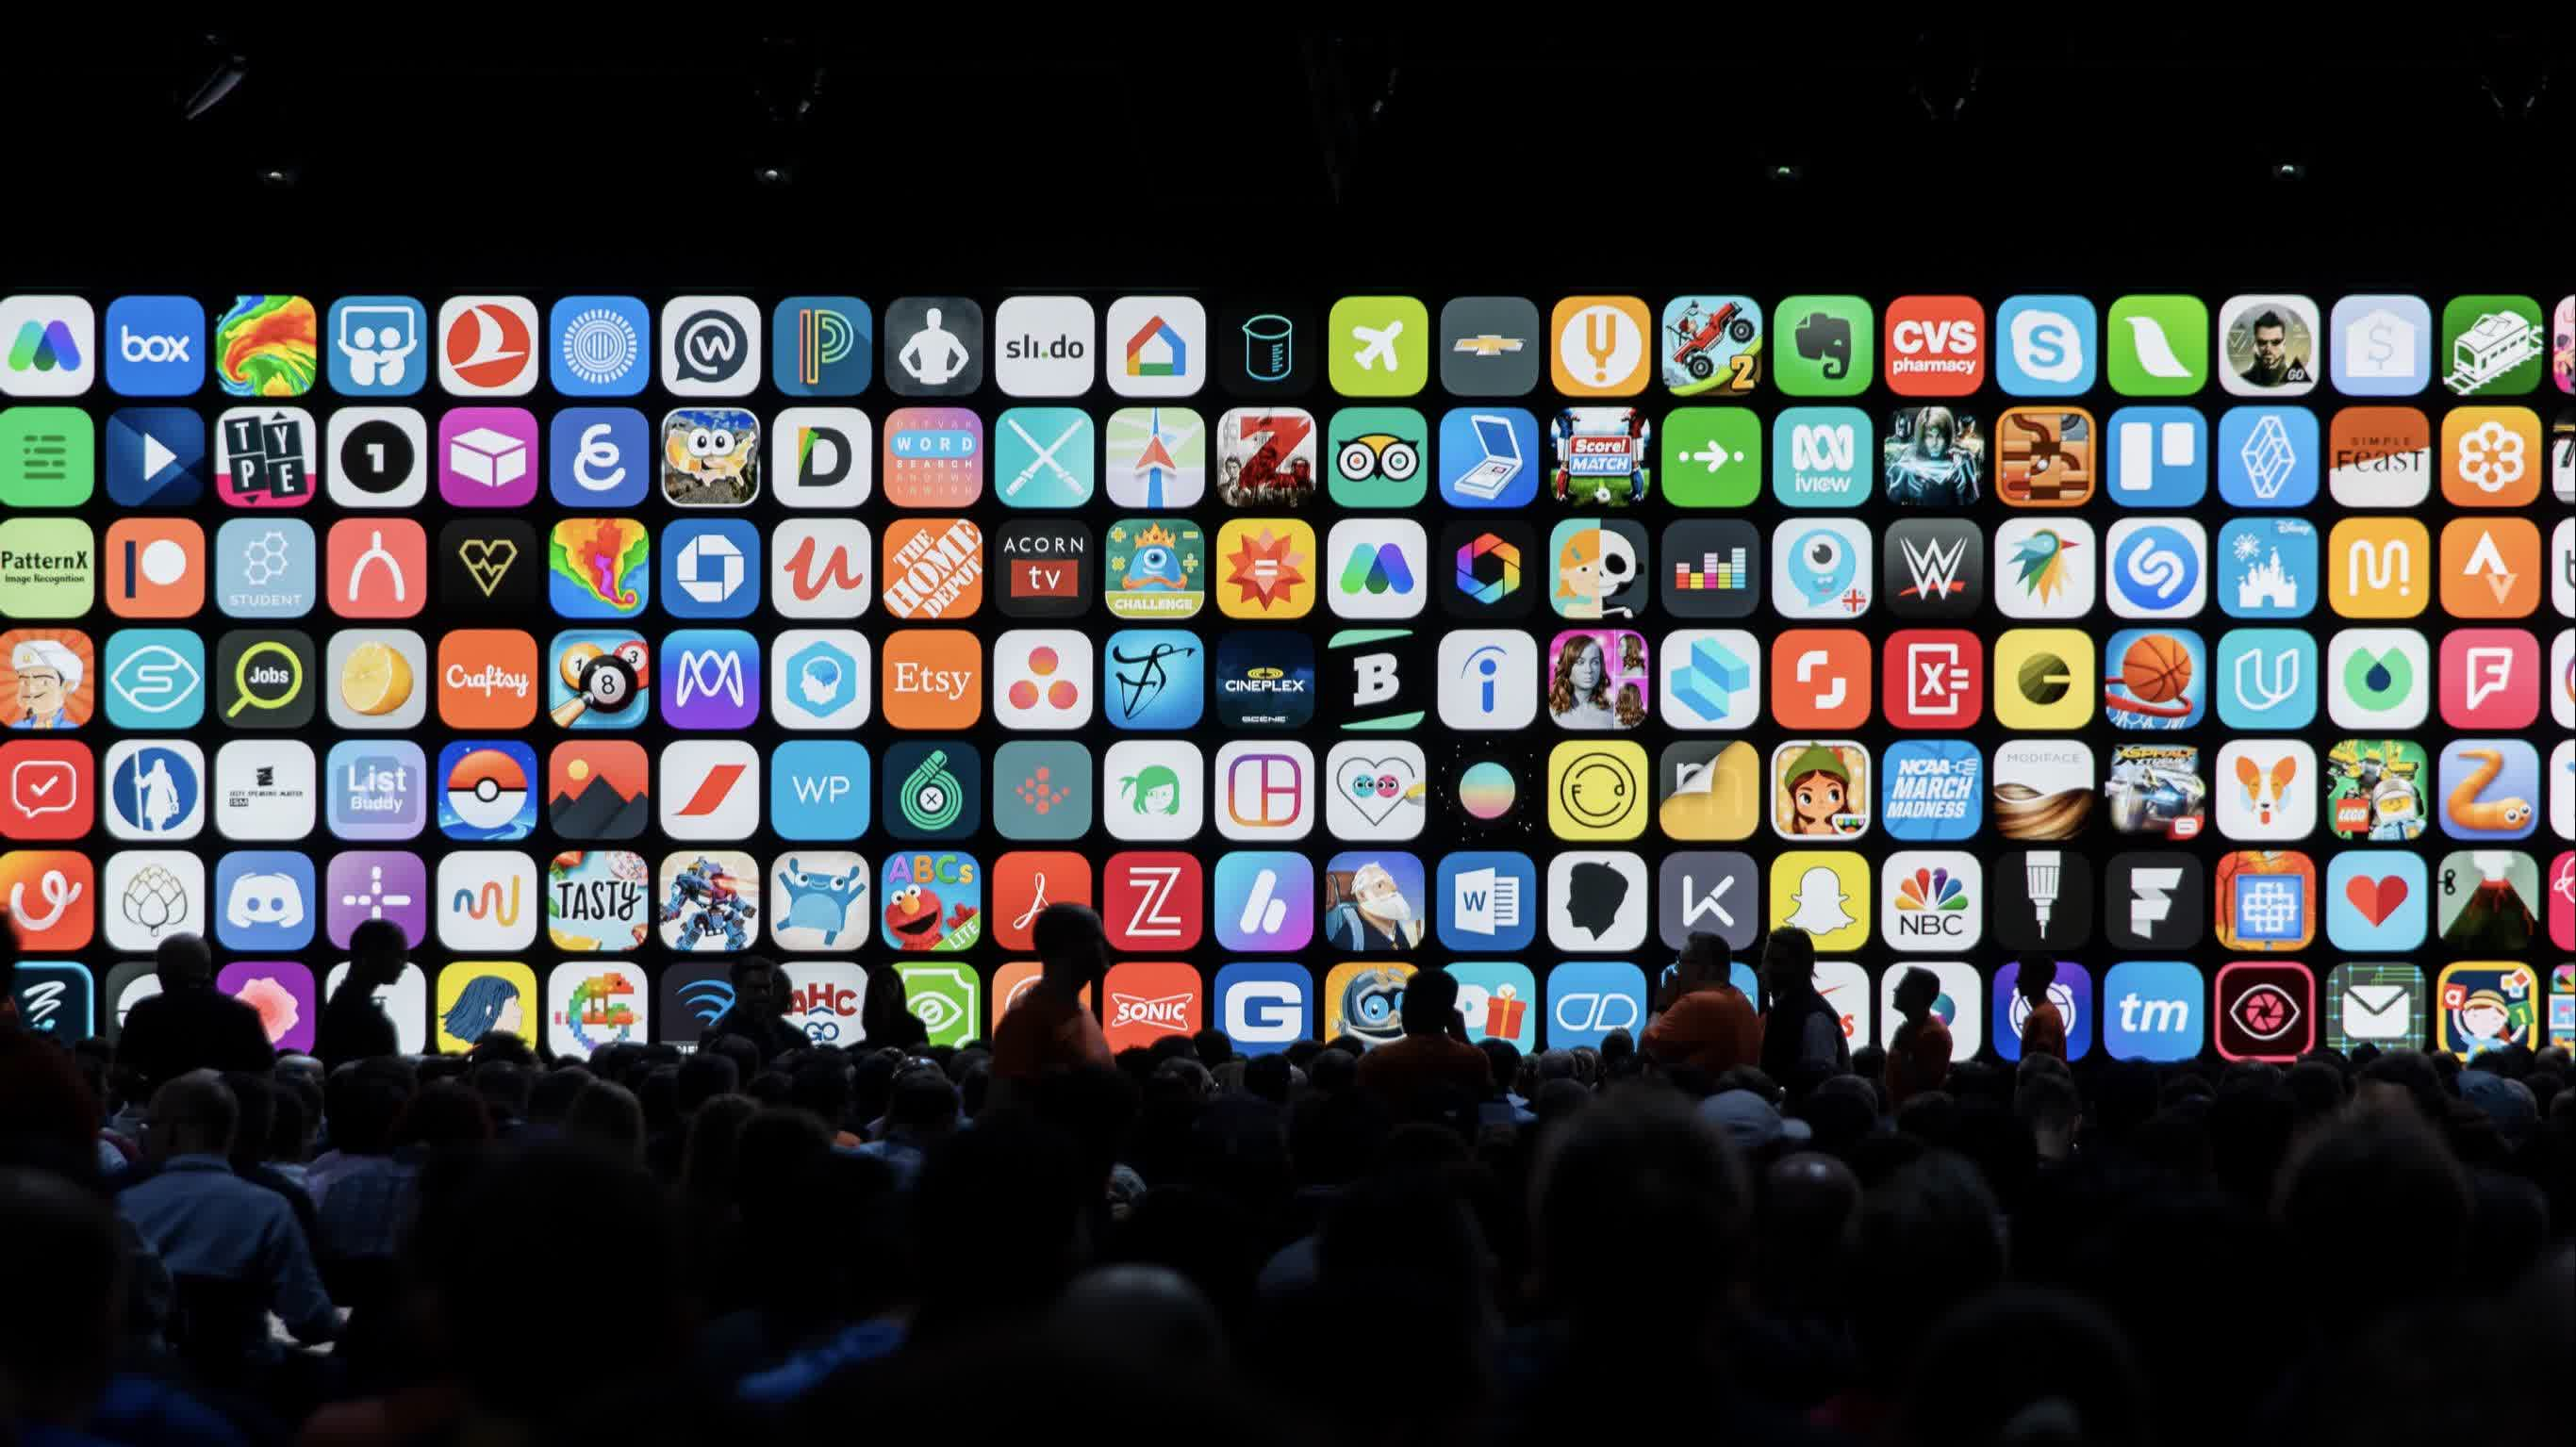 Apple says sideloading of iPhone apps would open users to serious security risks